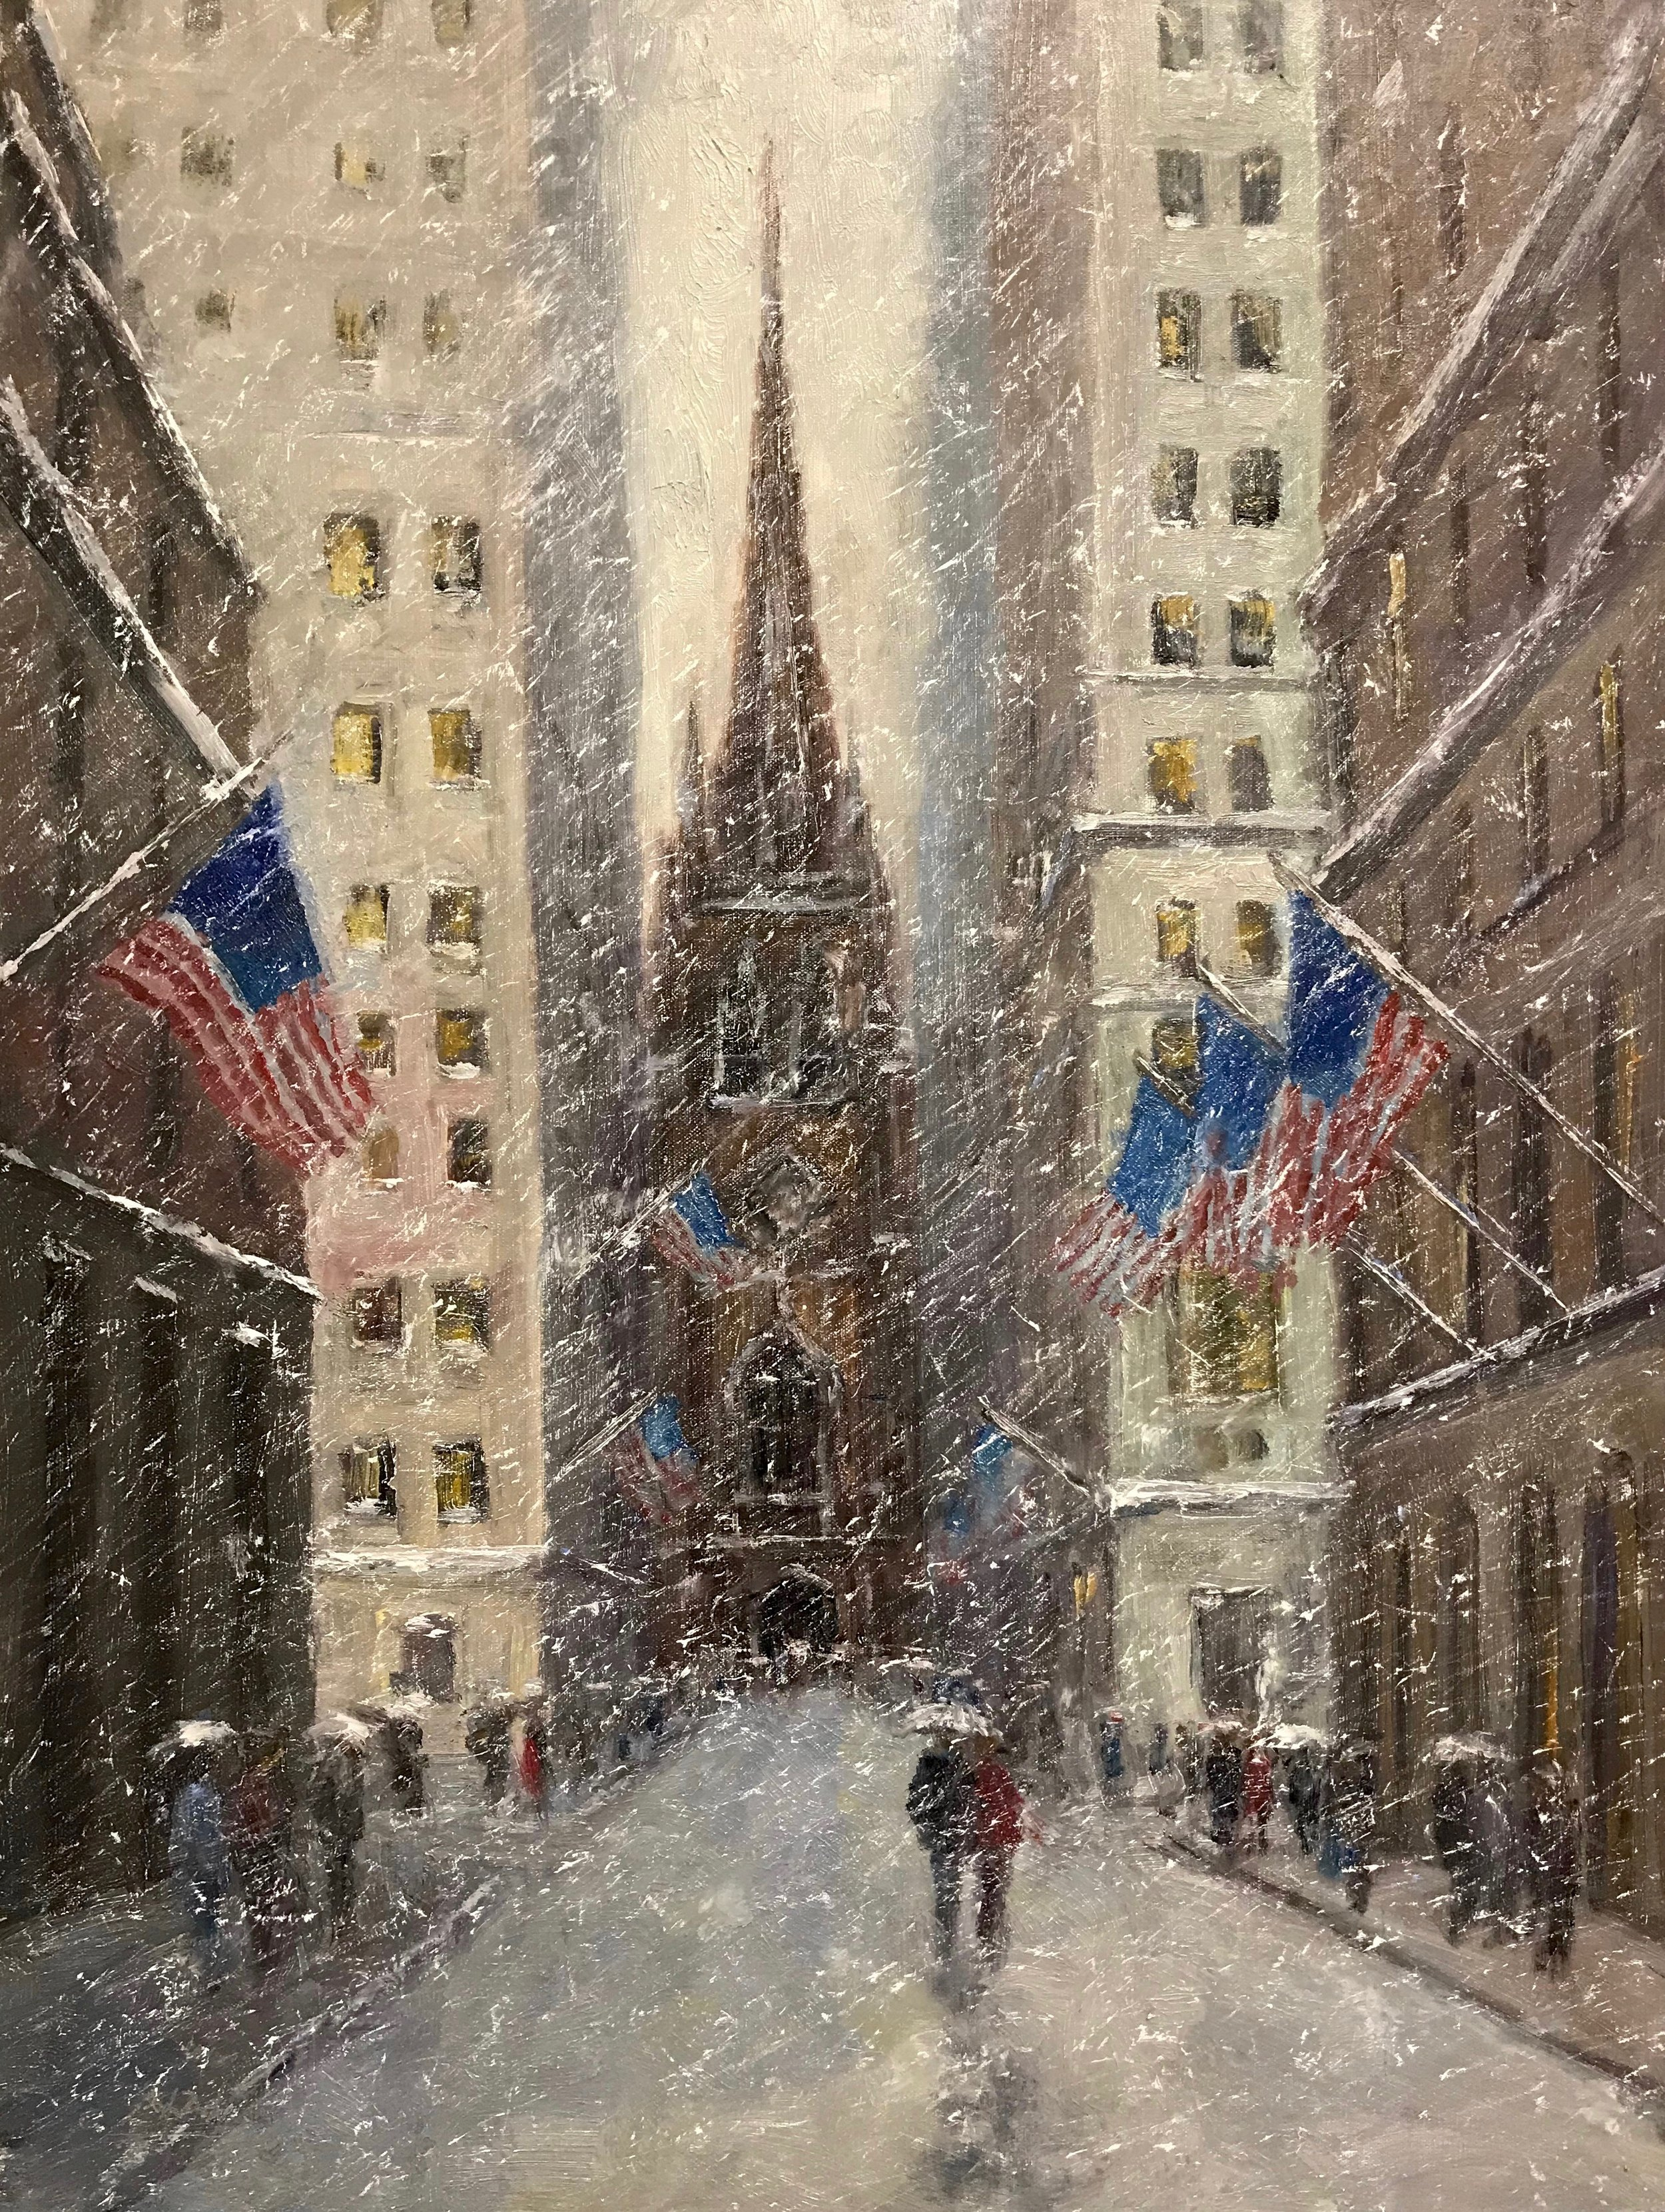 Old Trinity, Winter, 24 x 18, SLL by Mark Daly. Sold by Rehs Galleries.